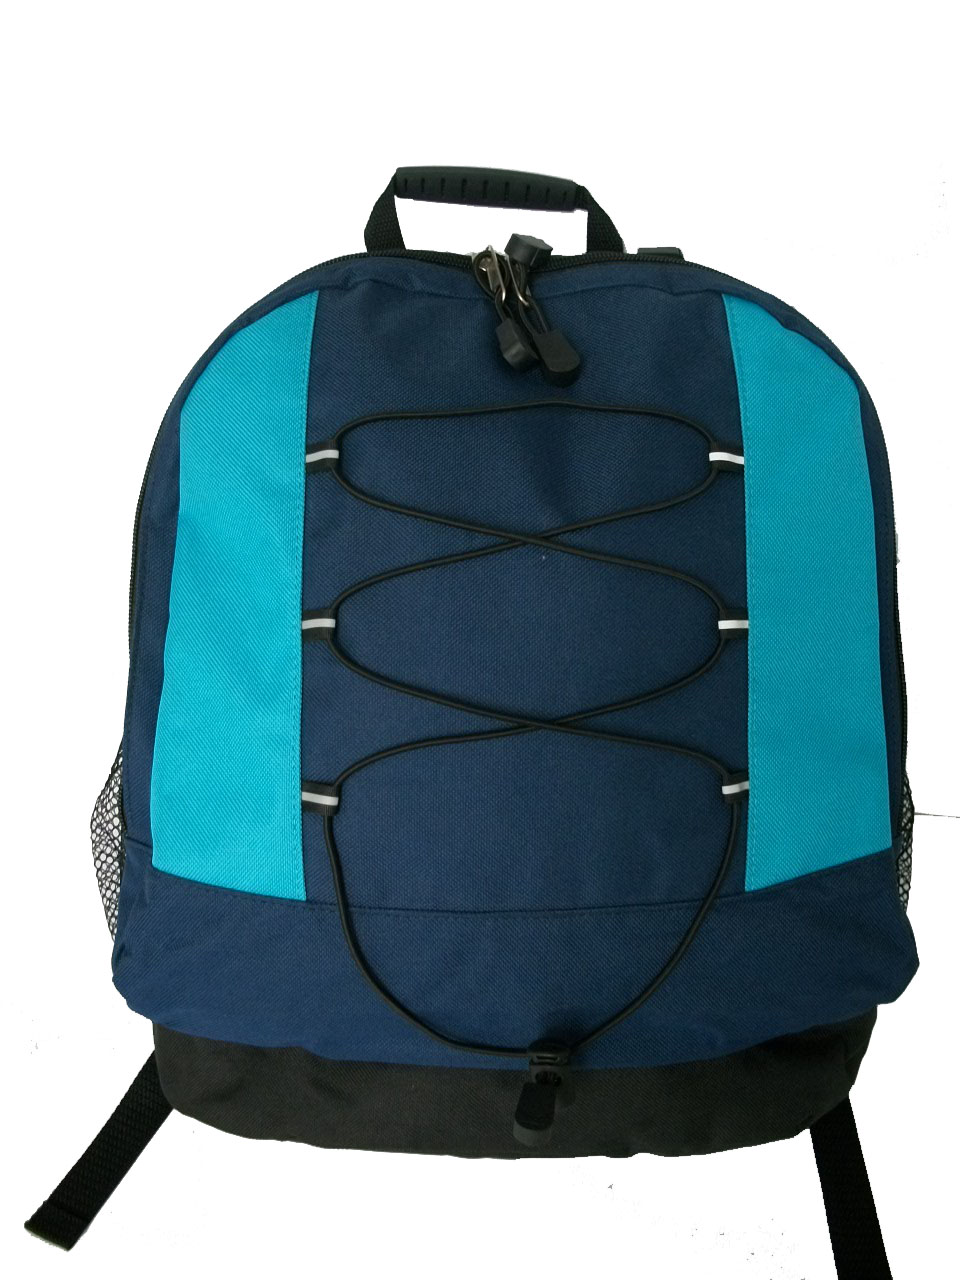 Backpack -11